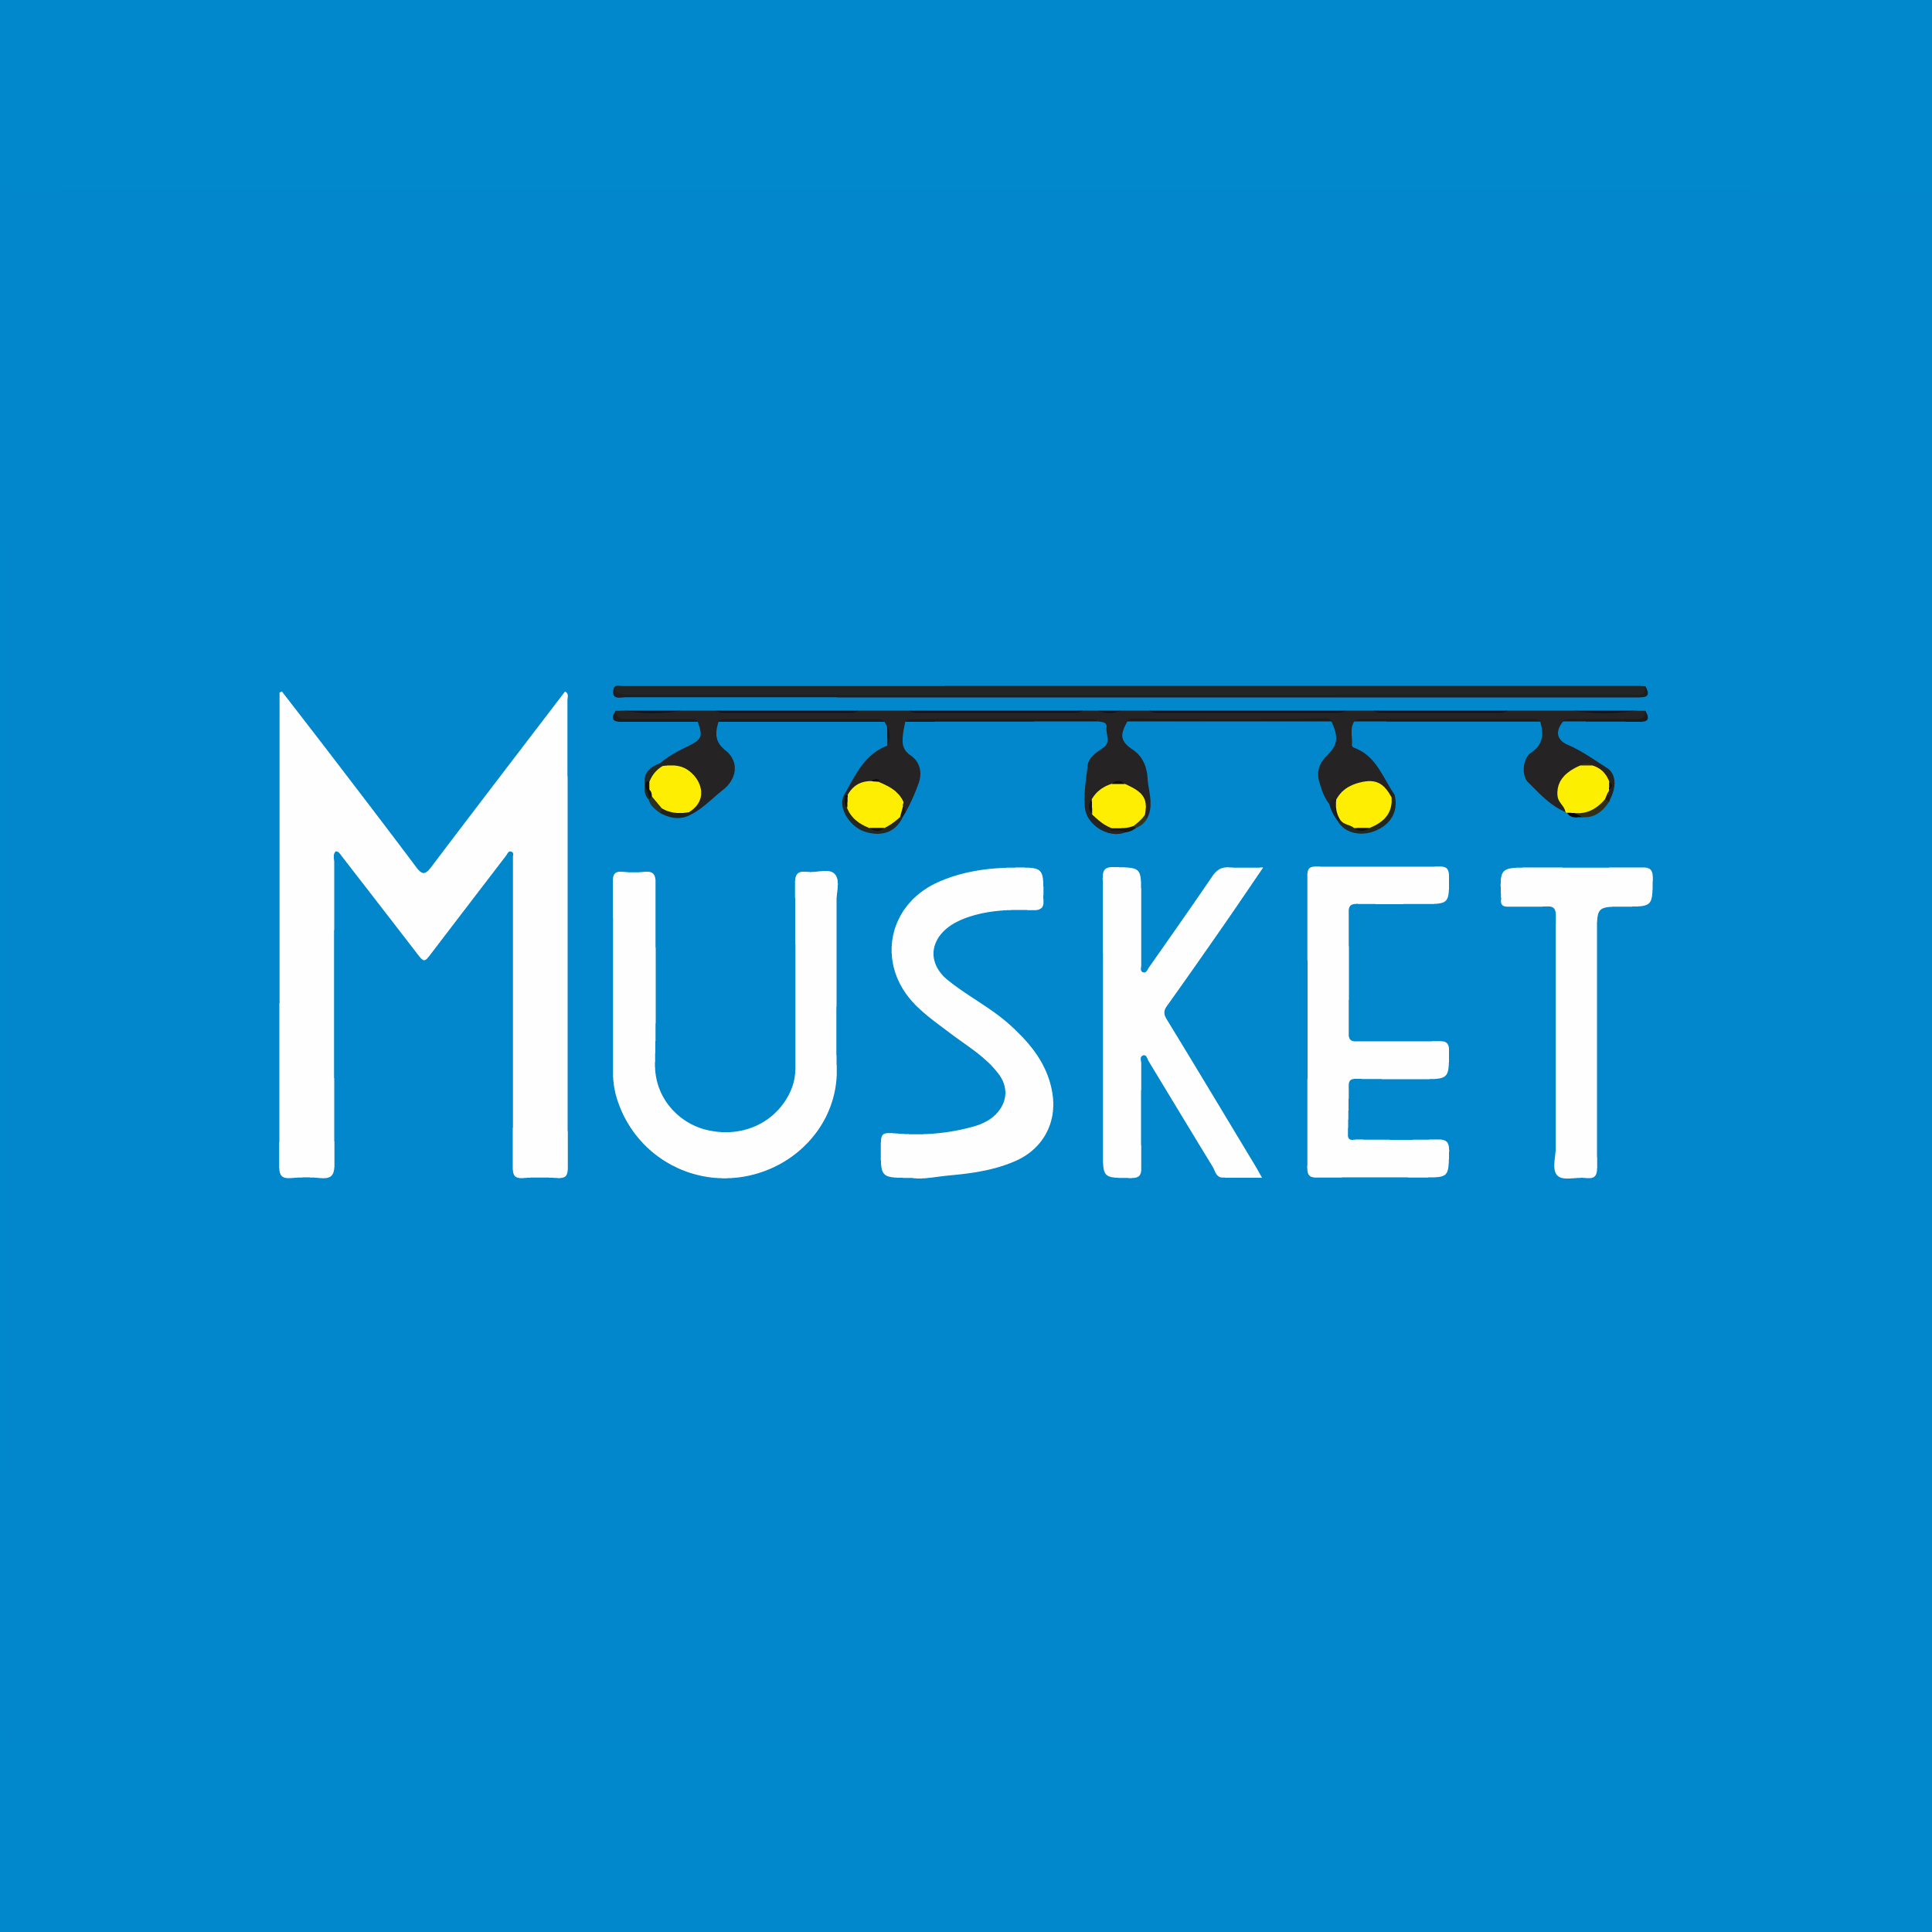 """MUSKET   Founded in 1908 as the Michigan Union Opera Company, MUSKET was once a small, all-male theatre troupe that specialized in presenting works written by University of Michigan students. Later realizing the irreverent nature of their gender limitations, the organization shifted its focus in 1956 to include students of all genders and changed their name to """"Michigan Union Shows, Ko-Eds, Too"""", or MUSKET for short. With this shift also came a change in the organization's content - instead of producing student written operettas MUSKET began presenting Broadway-style musicals, a tradition that has lasted over 50 years."""